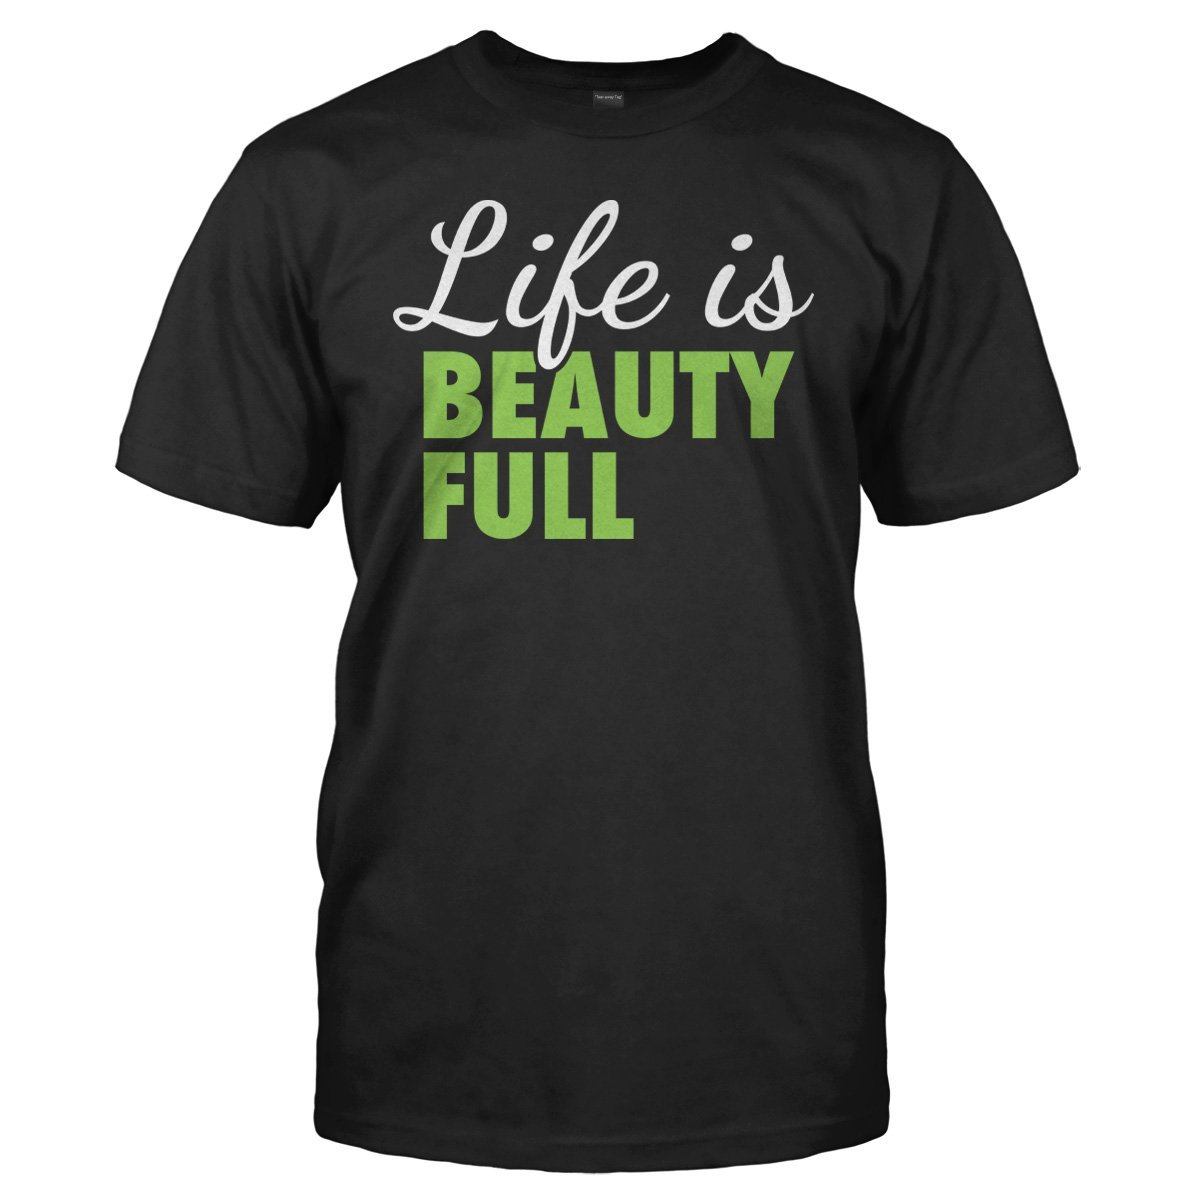 Life Is Beauty Full - T Shirt